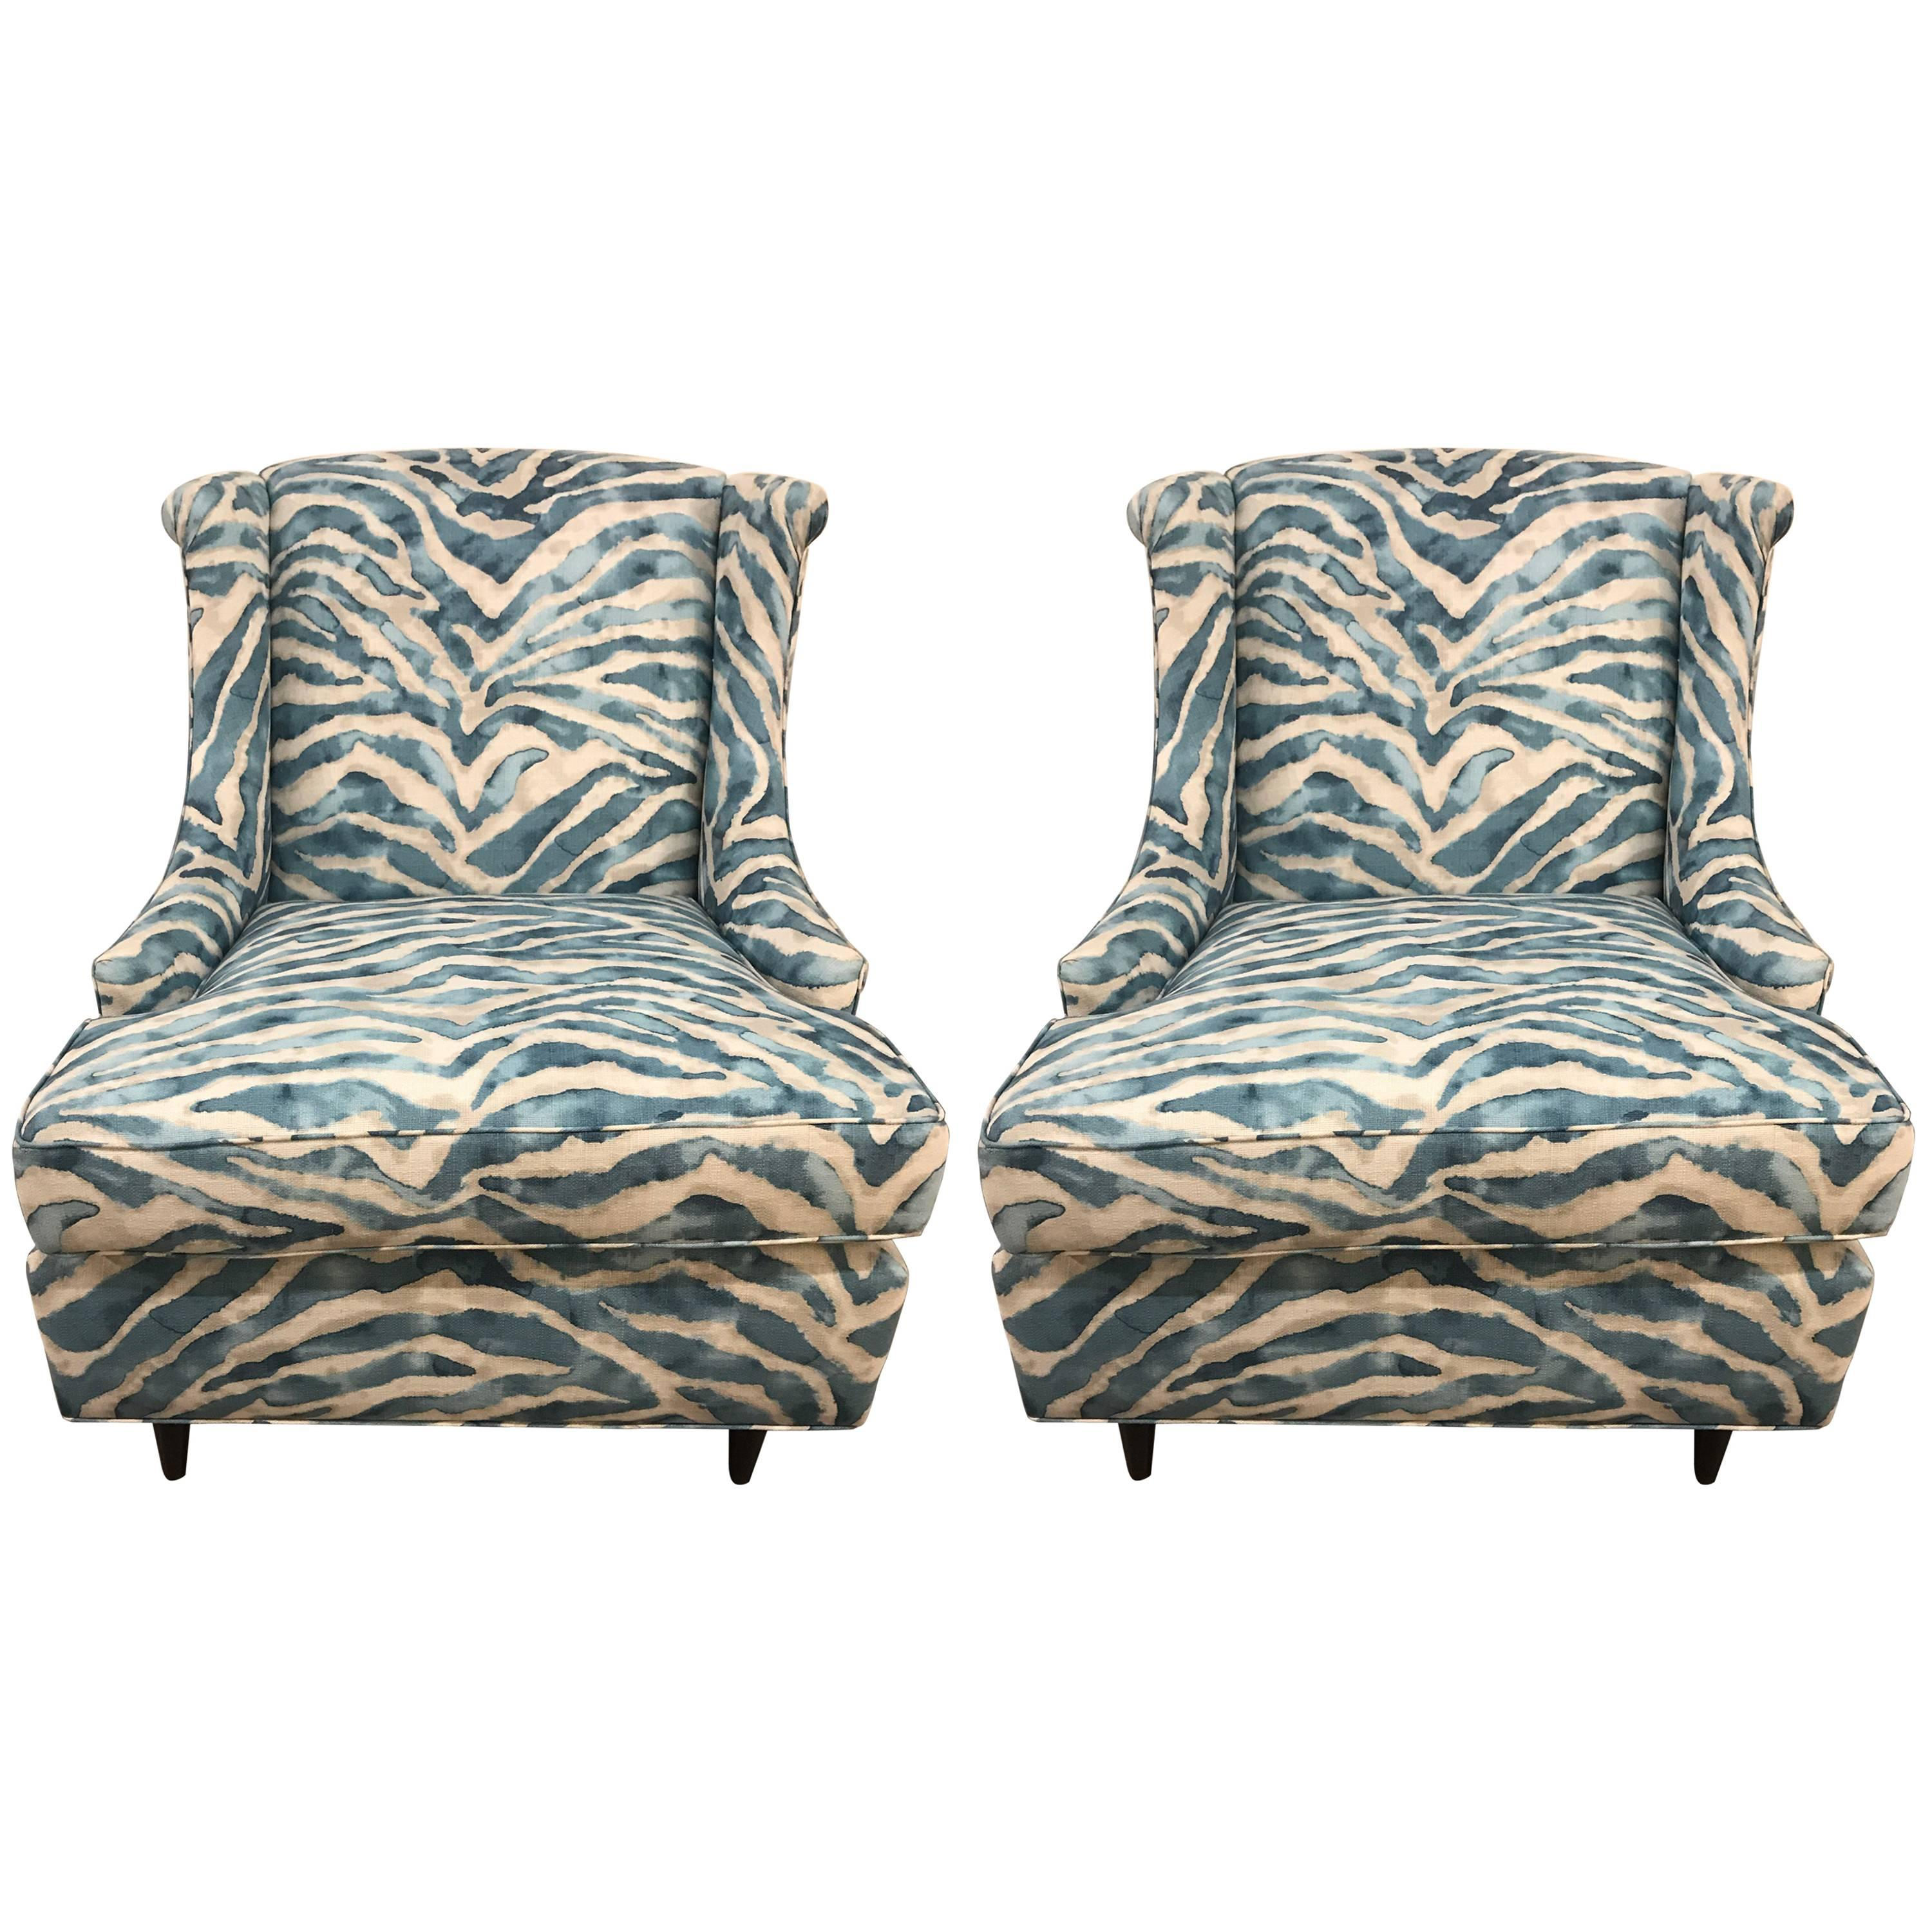 Charmant Pair Of Kravet Upholstered Blue Zebra Print Club Wingback Chairs For Sale